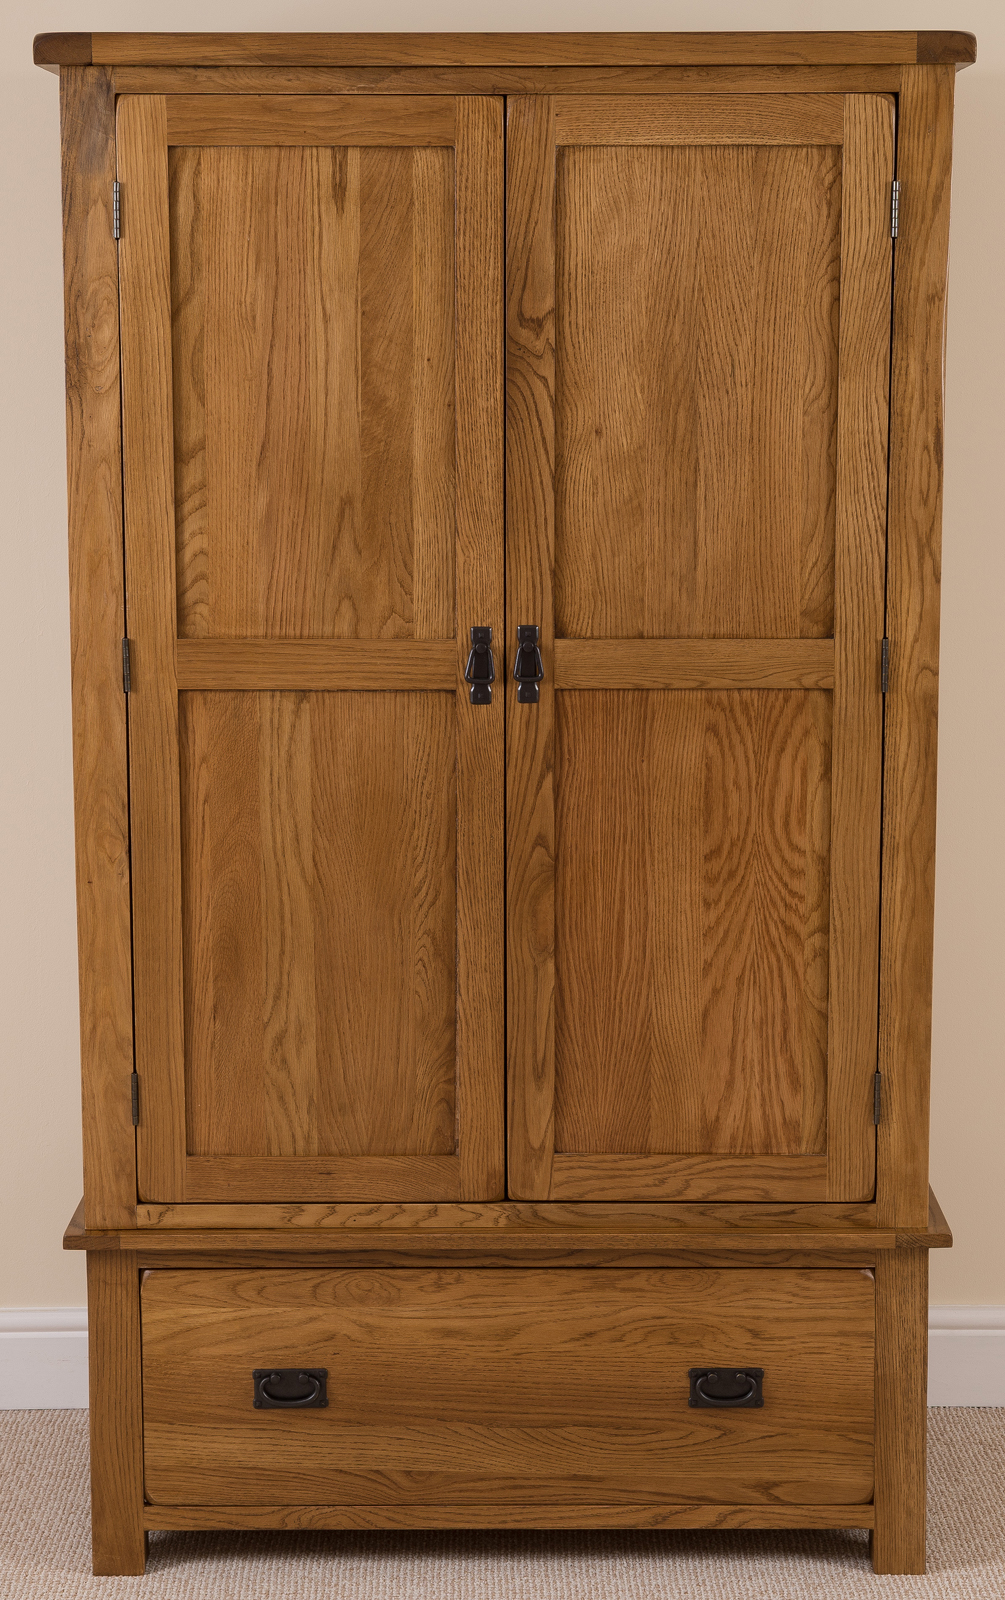 oak double wardrobe with drawer new rustic bedroom furniture ebay